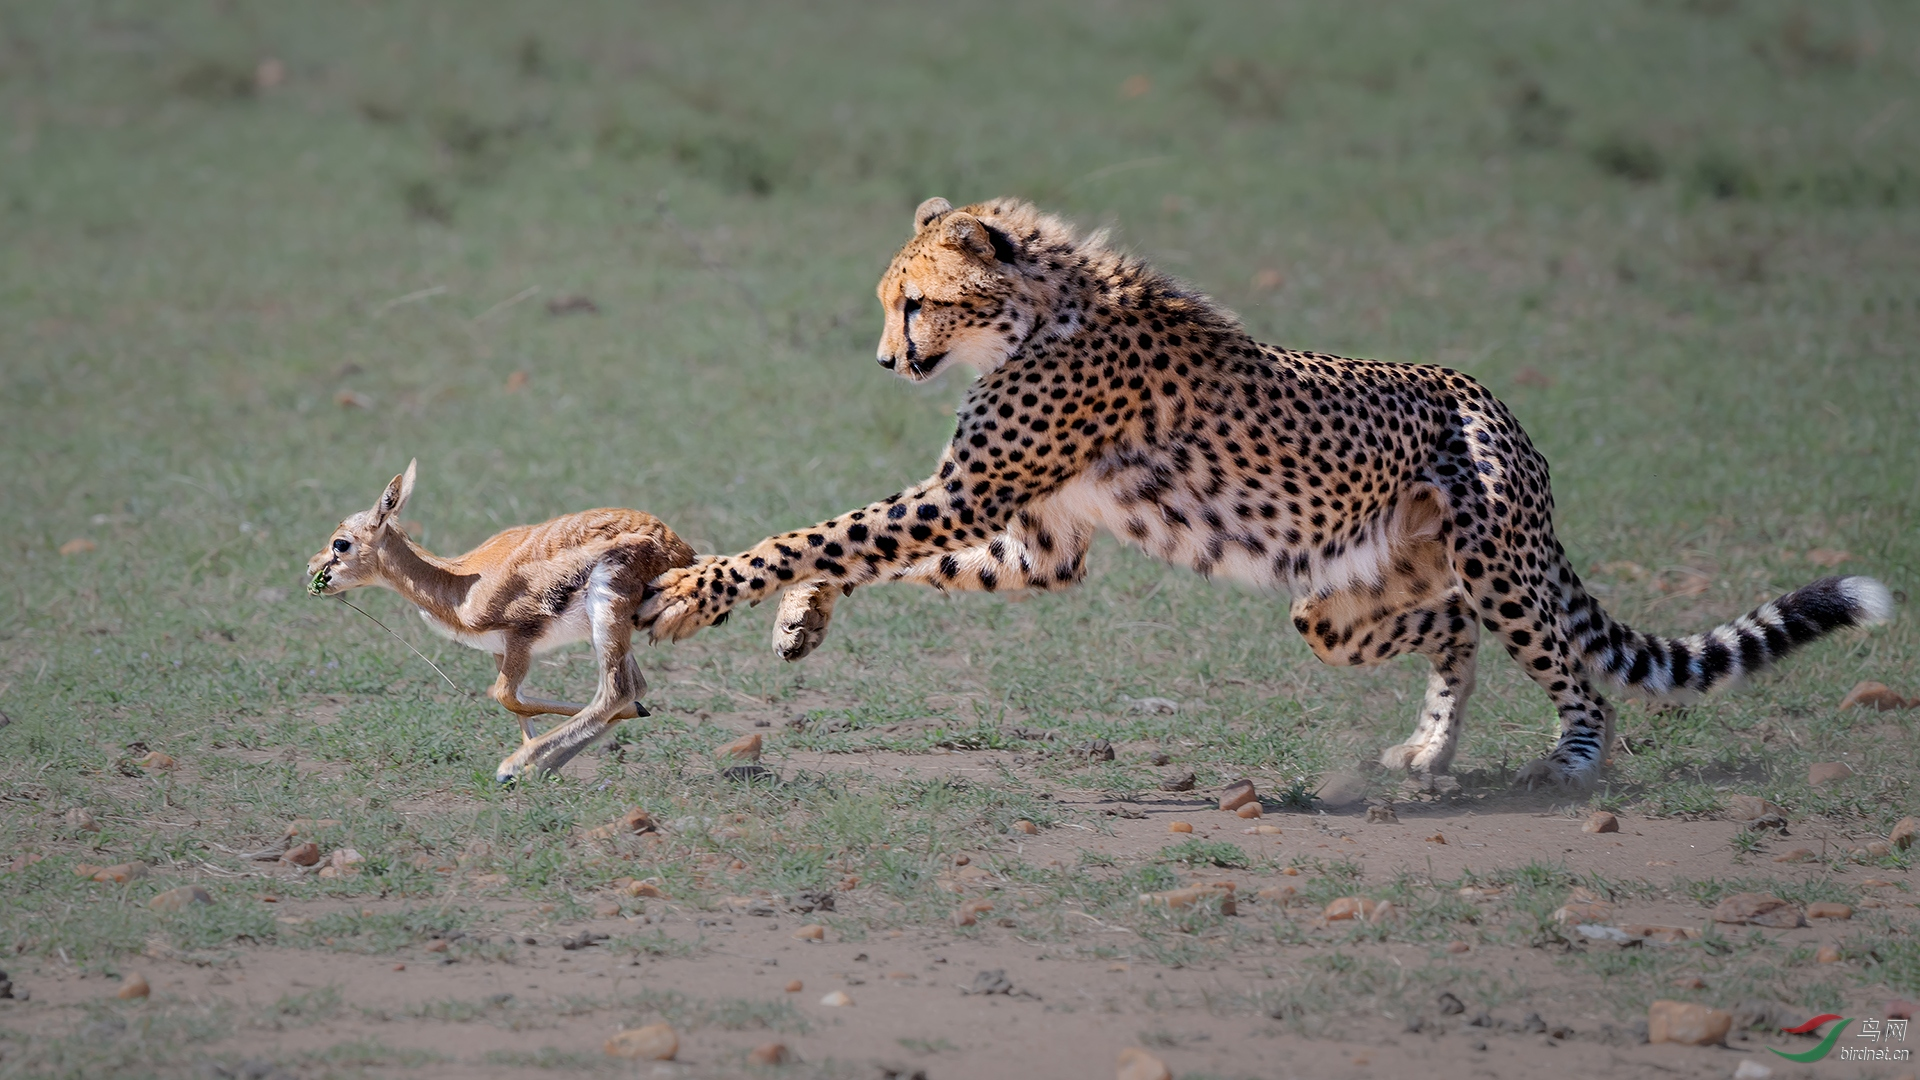 0253.Cheetah and Gazelle L1920-菲舍捷.jpg